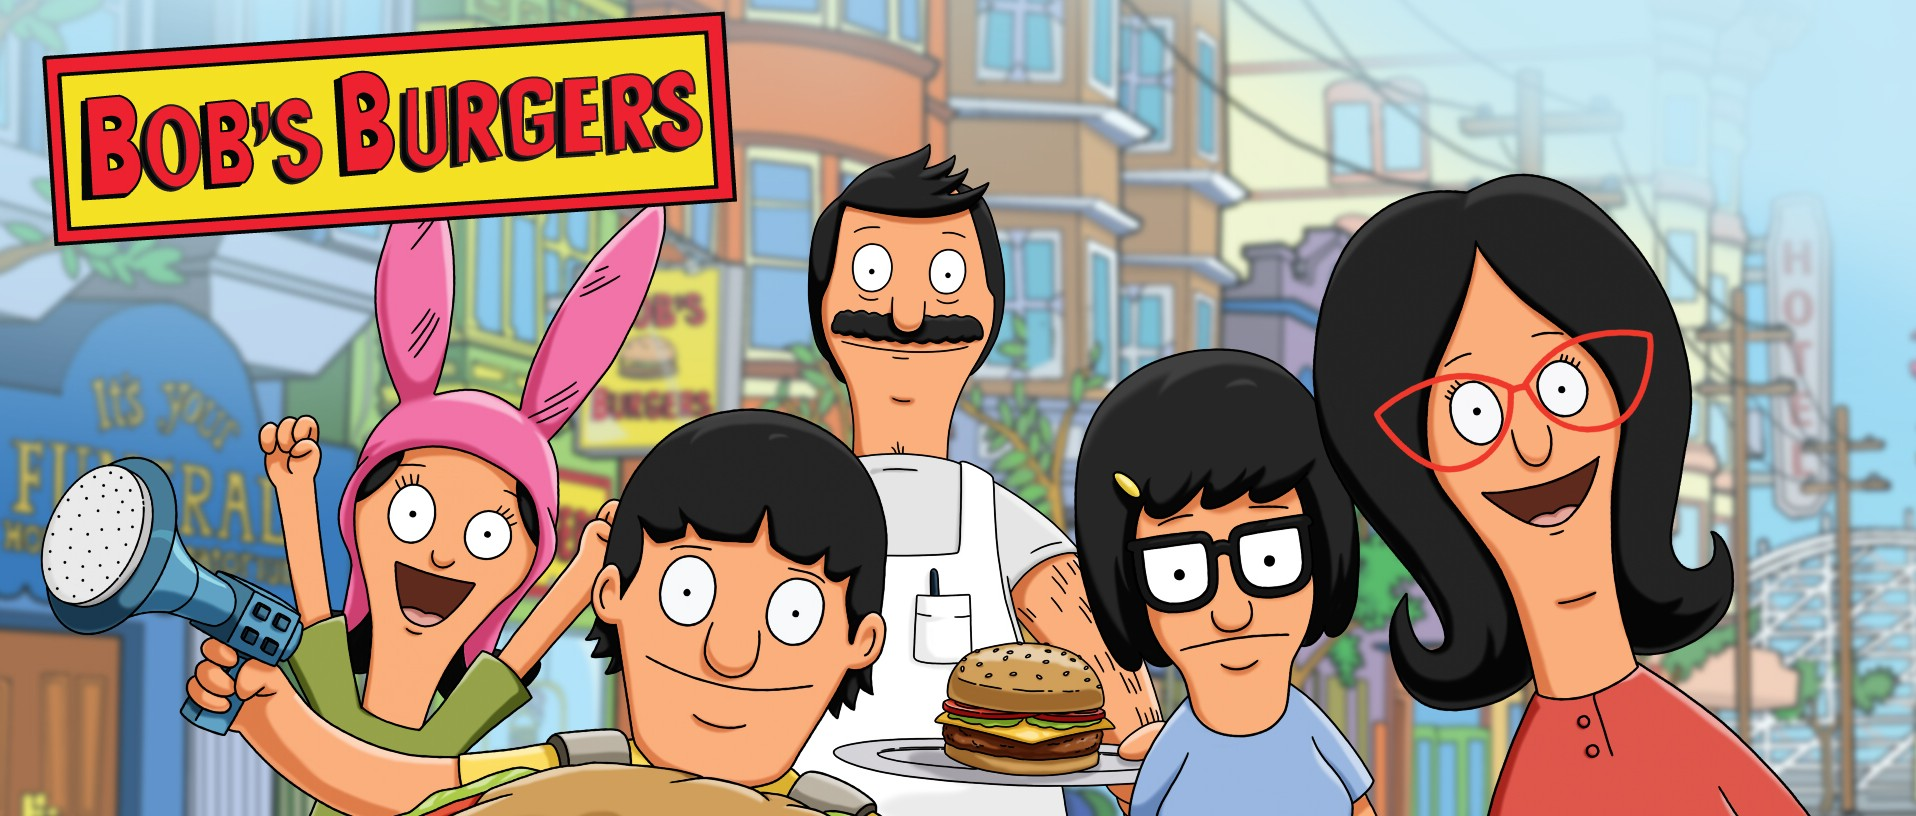 come meet our family bobs burgers cast